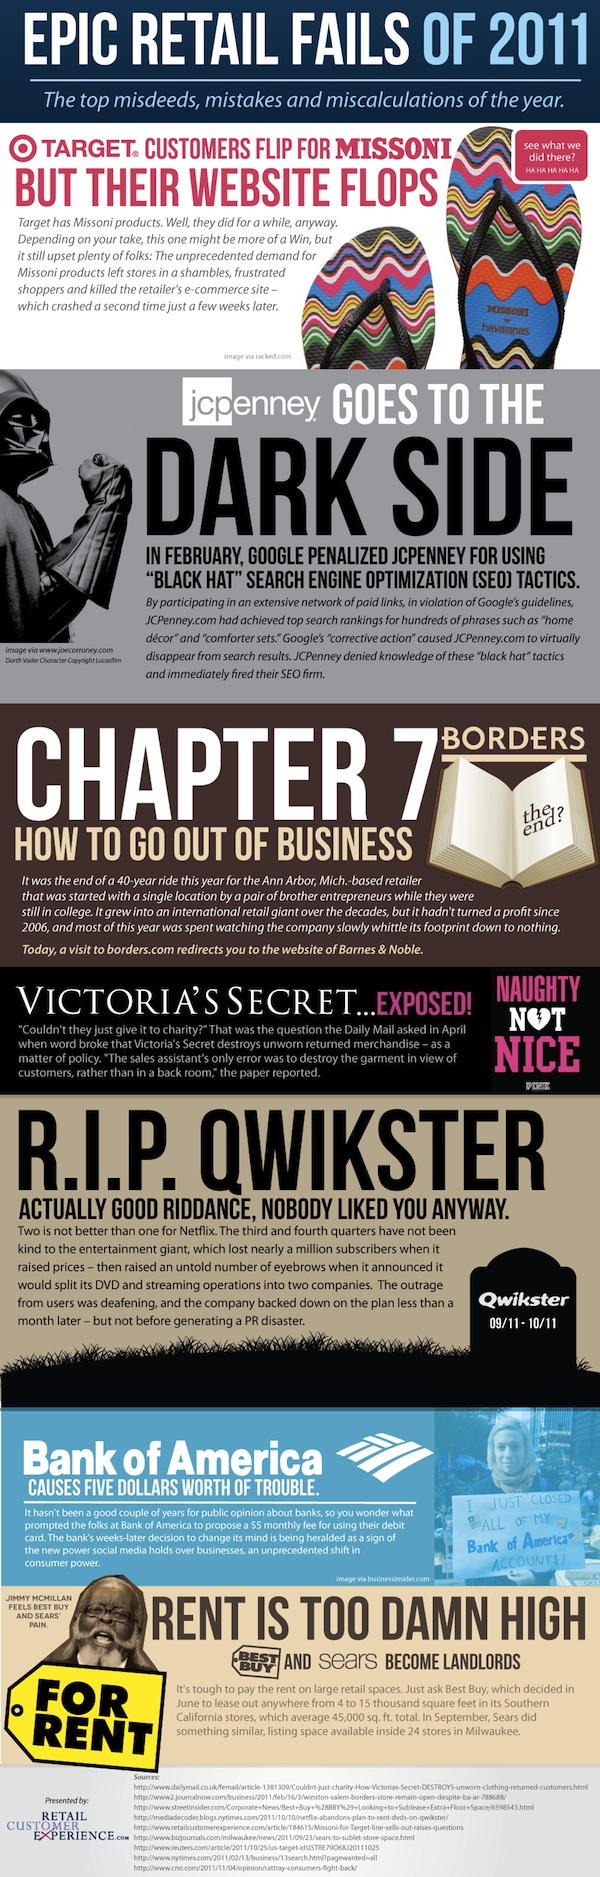 small Epic Retail Fails 2011 [Infographic]